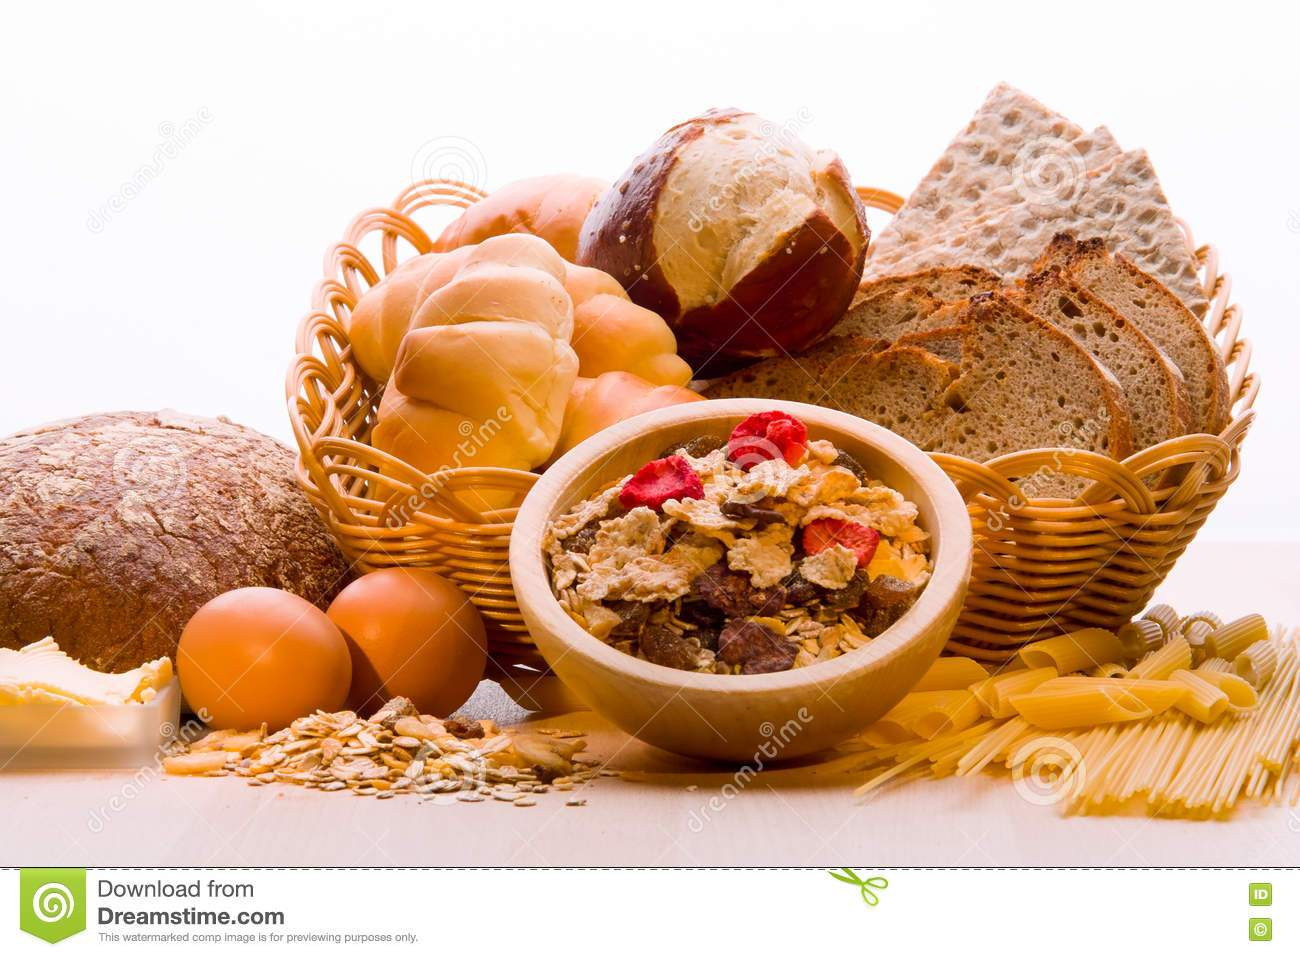 Bread cereal rice and pasta group clipart clipart stock Bread cereal rice and pasta group clipart 6 » Clipart Portal clipart stock